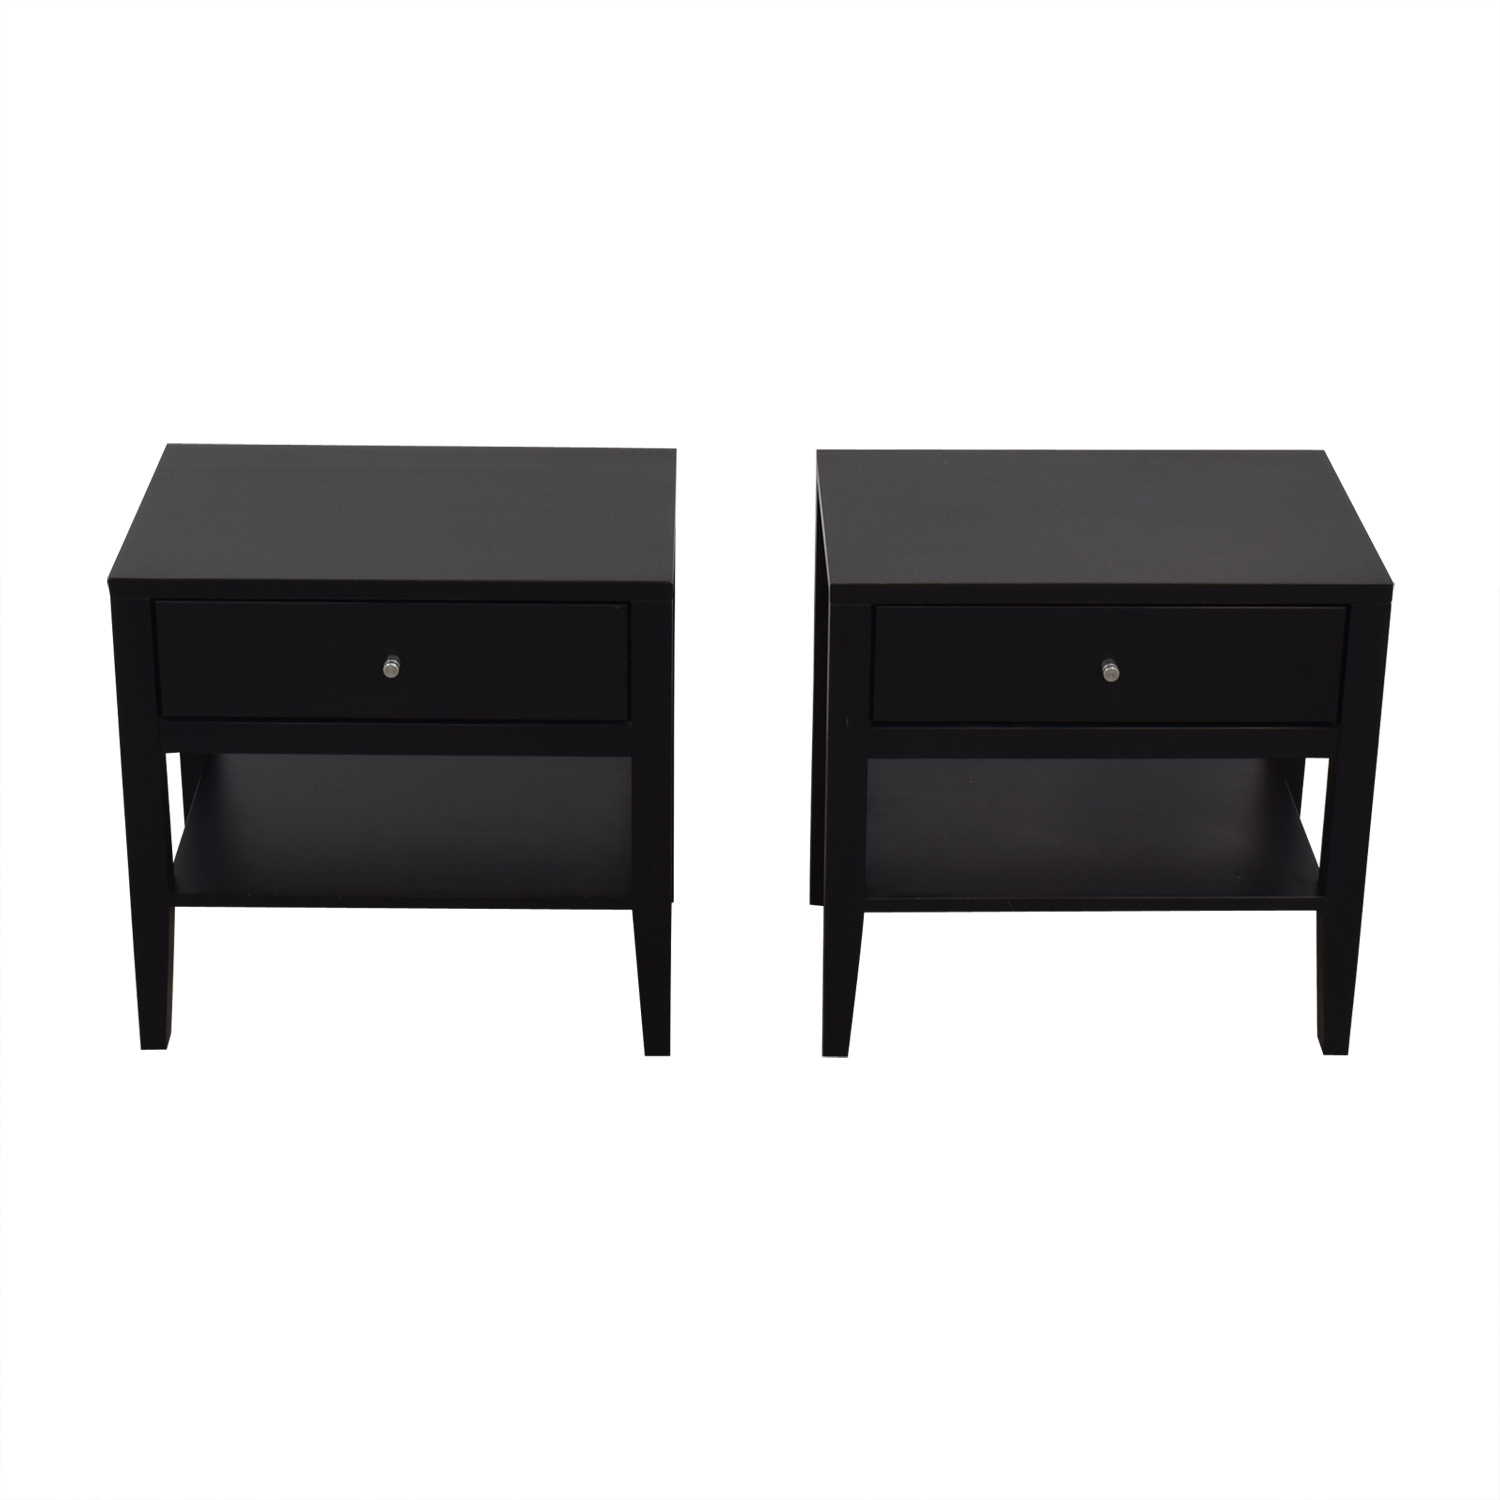 Room and Board Room & Board Calvin Black Single-Drawer Nightstands price